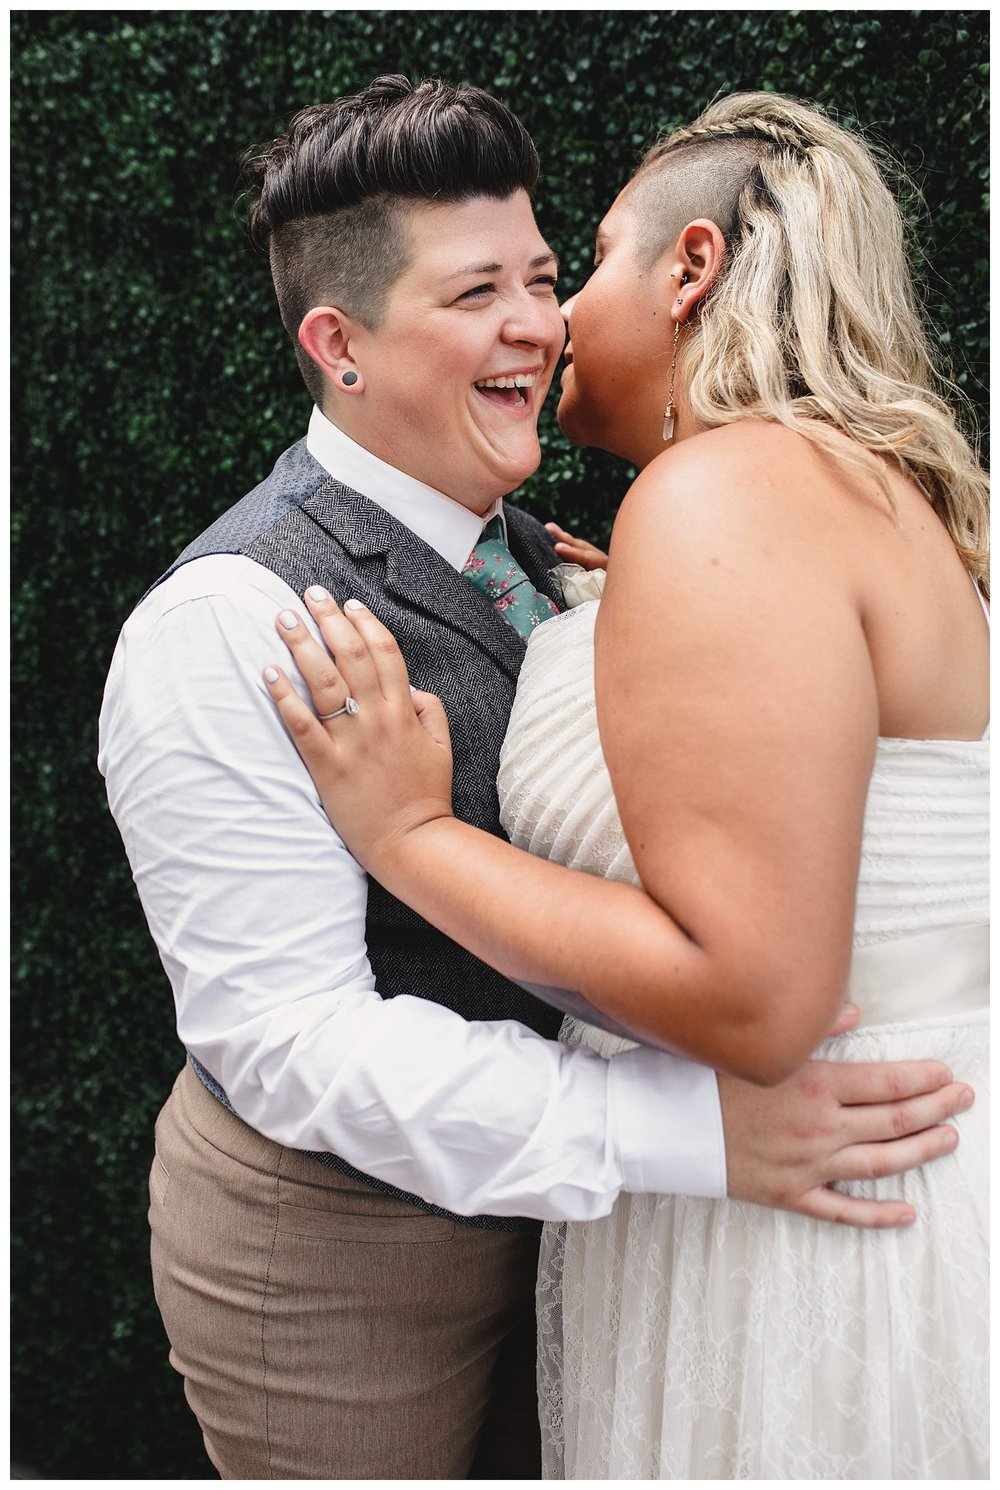 Kelsey_Diane_Photography_The_Vow_Exchange_Kansas_City_LGBT_Friendly_Wedding_Photographer_Kansas_City_Scout_Ica_0729.jpg